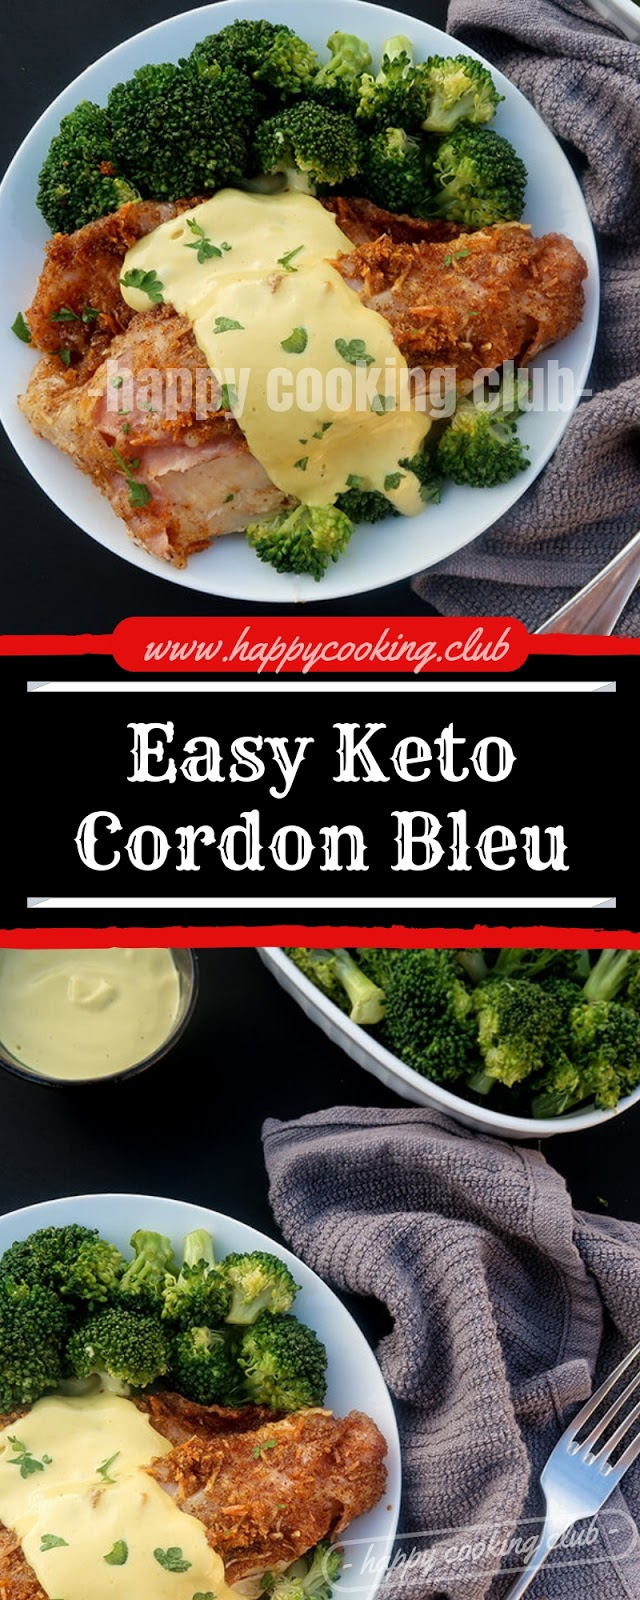 Easy Keto Cordon Bleu